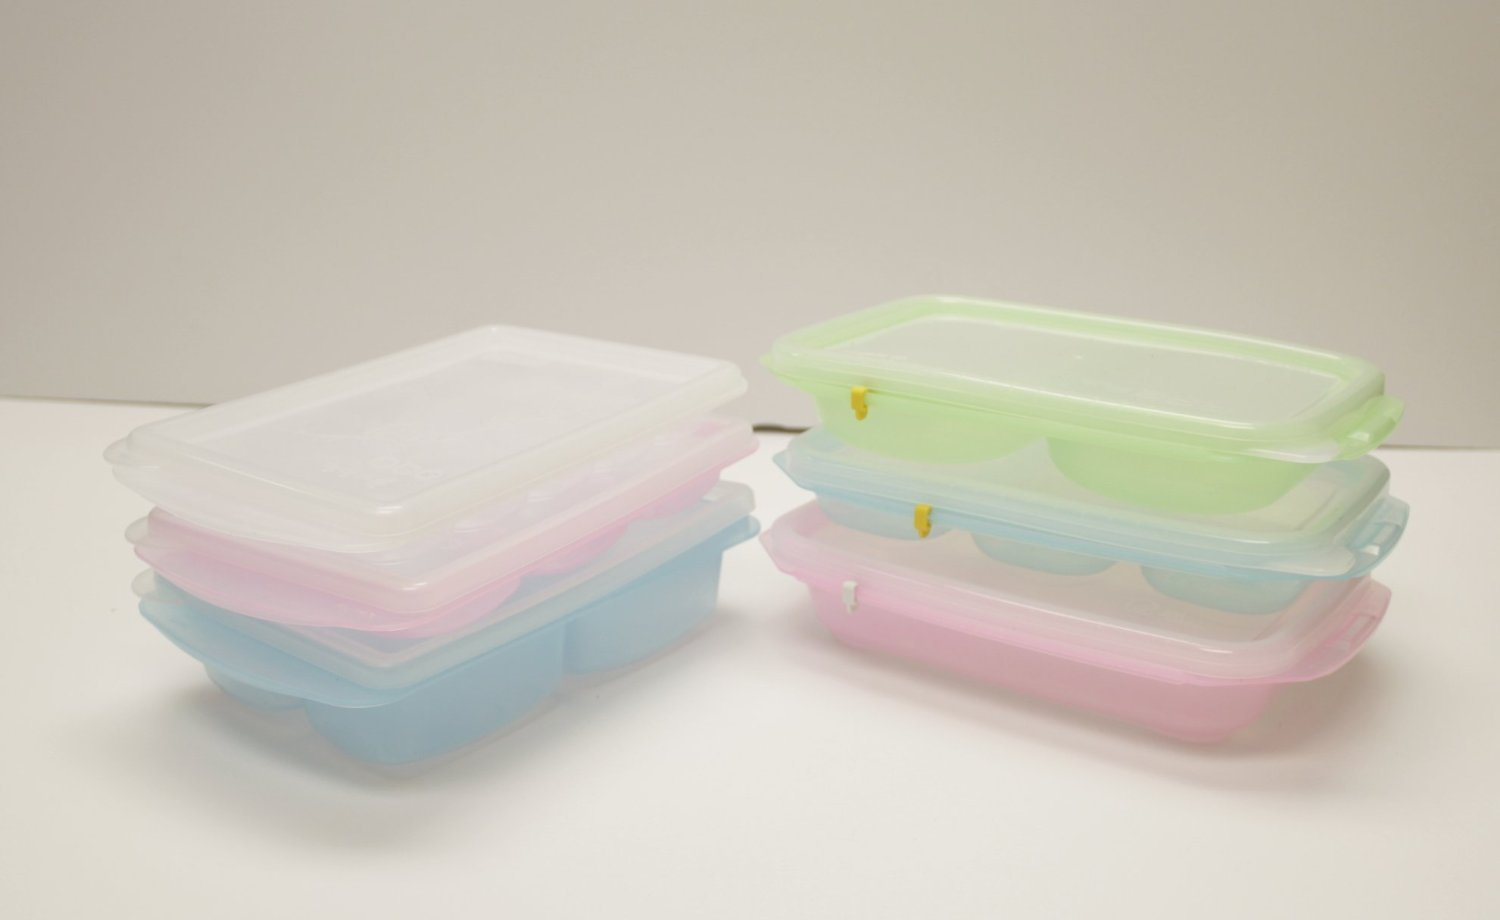 HSI Easily Pop Out 1, 2, 3, 4, 6, 15 Compartments Ice Cube, Baby Food sets, BPA-free PE Tray with Clear Lid in Multi Color, RRE Ice Cube Tray, Set of 6 by HSI (Image #2)